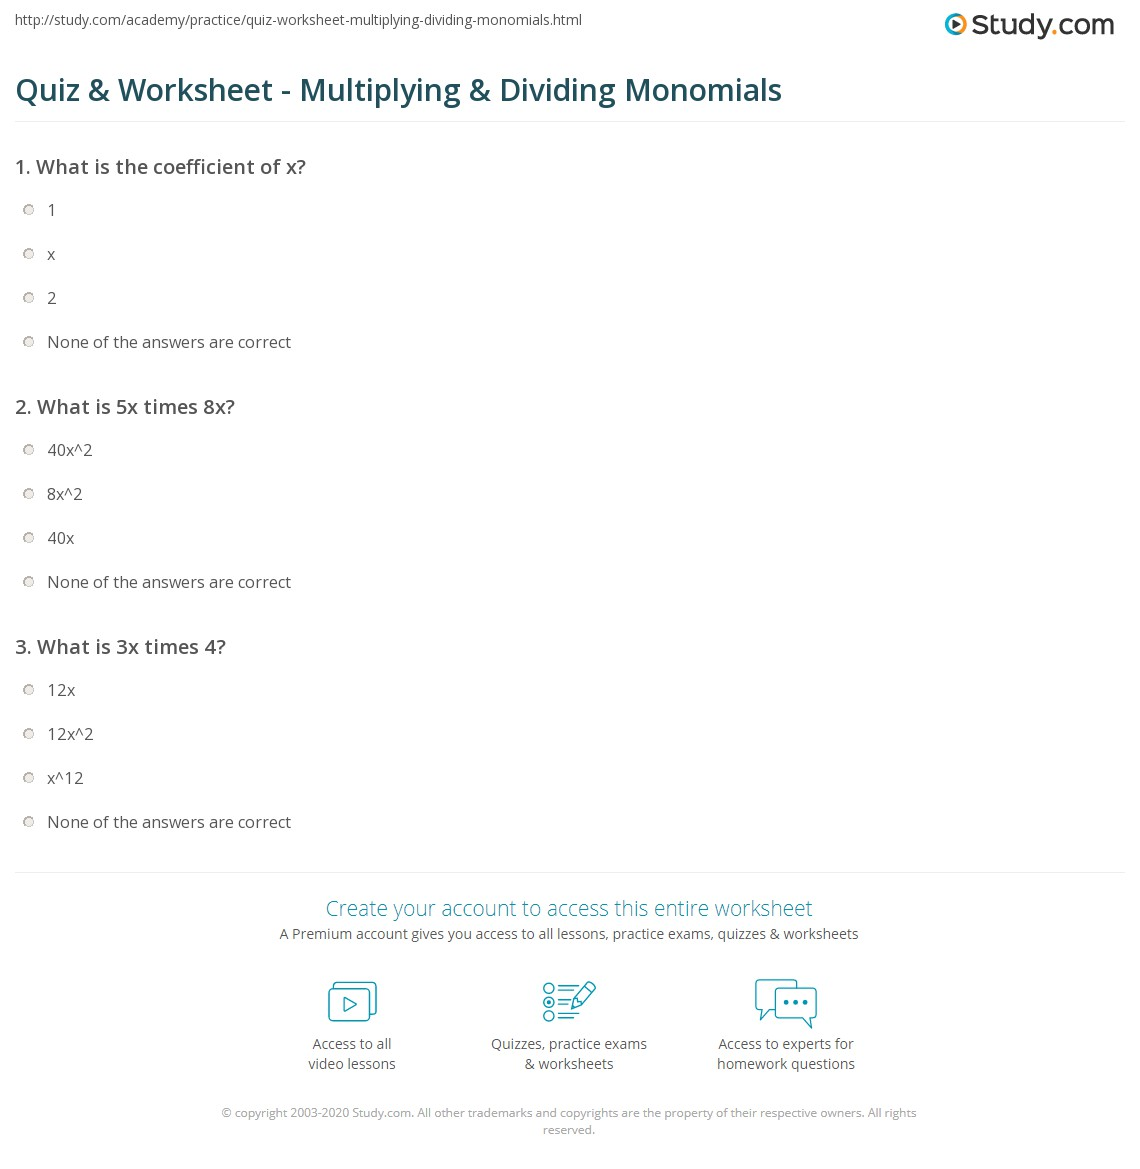 Quiz & Worksheet - Multiplying & Dividing Monomials | Study.com